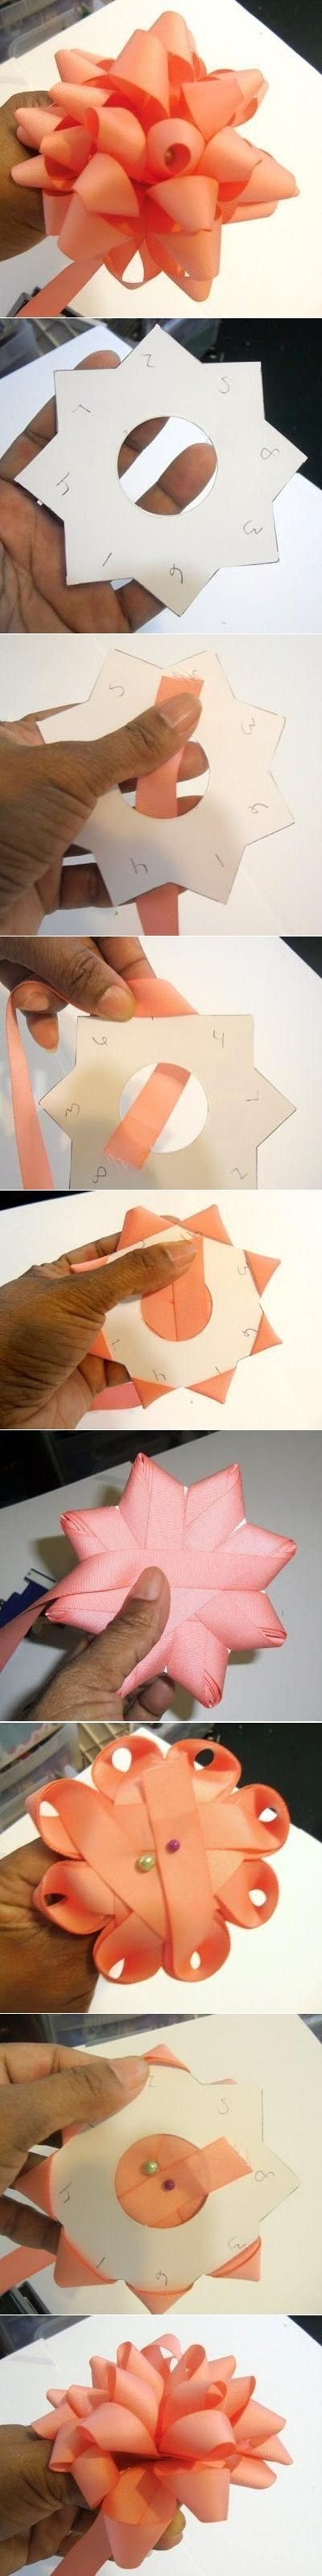 Different Ways to Use Ribbons 1